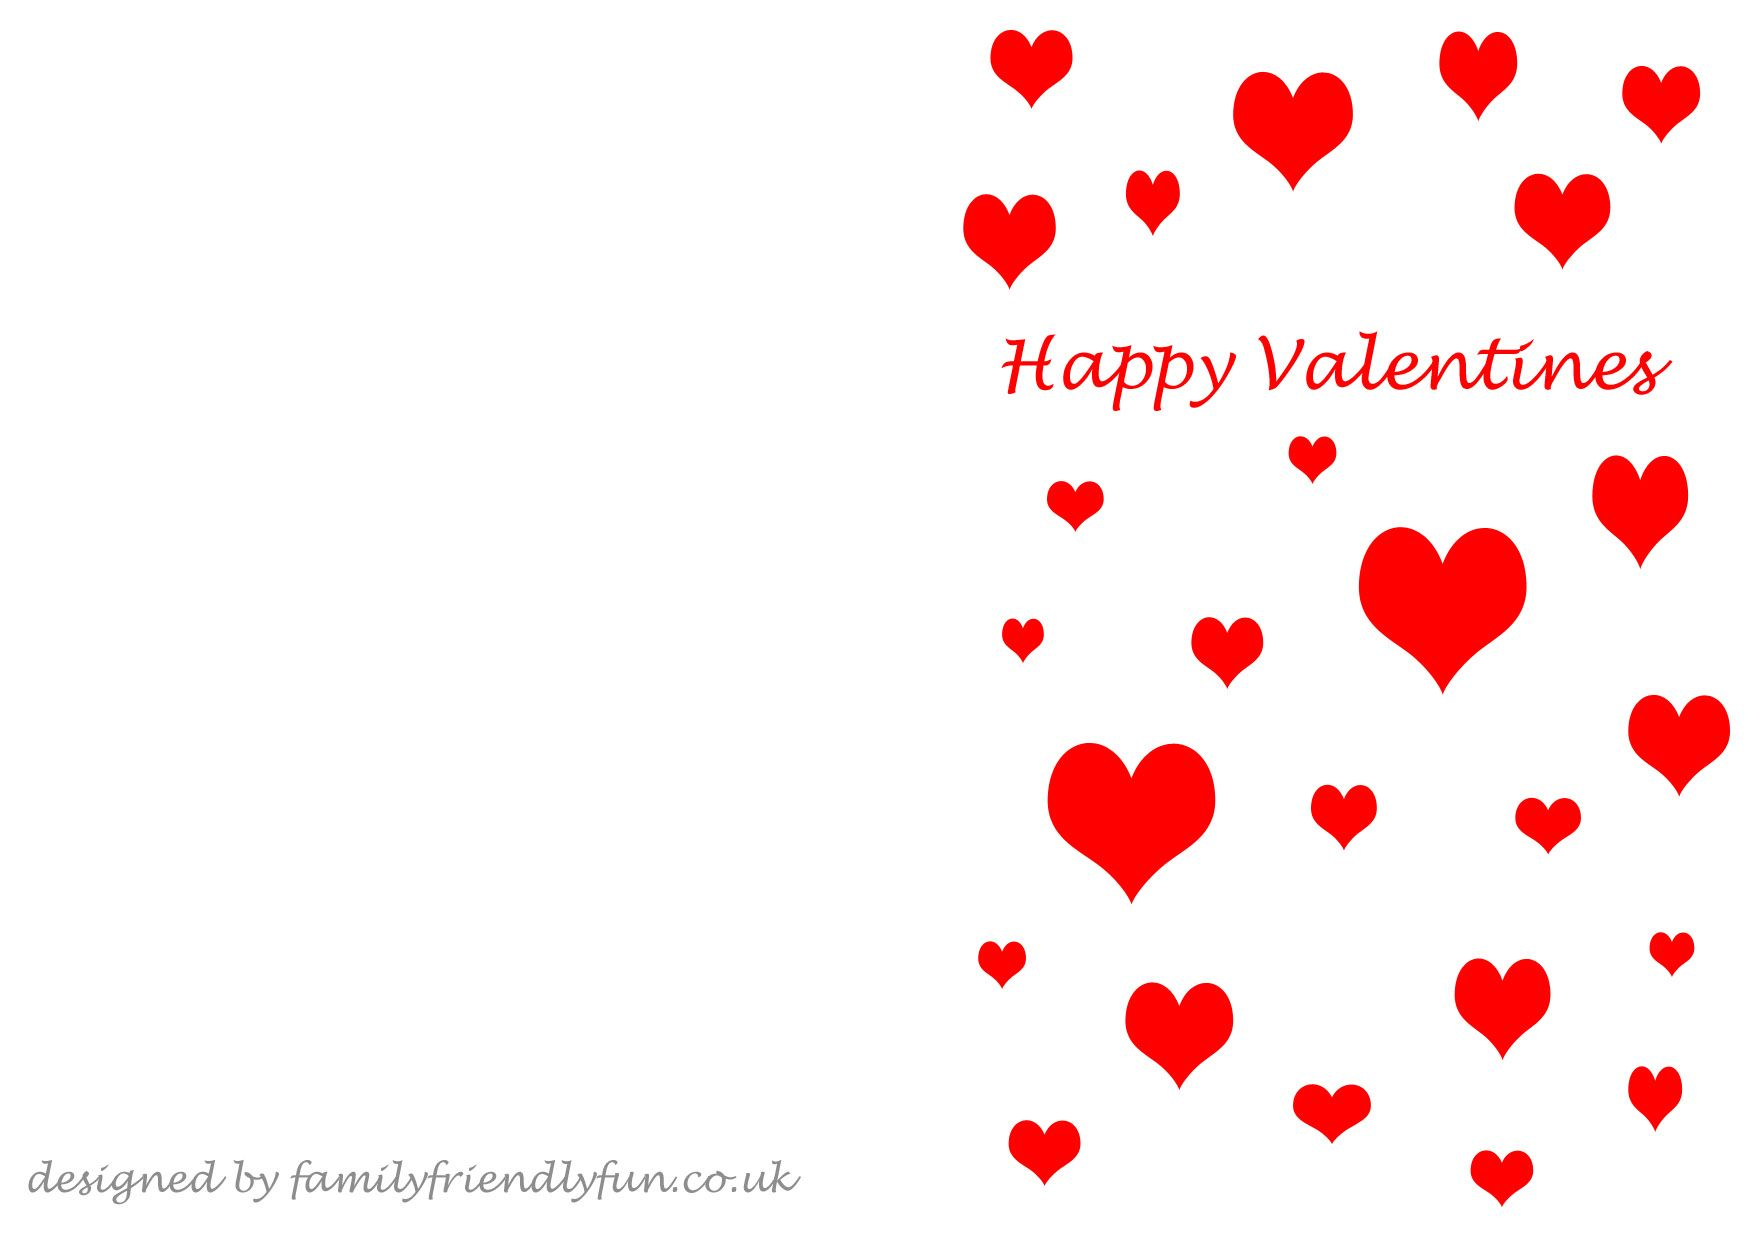 valentines cards for children free printable template - Valentine Templates Printable